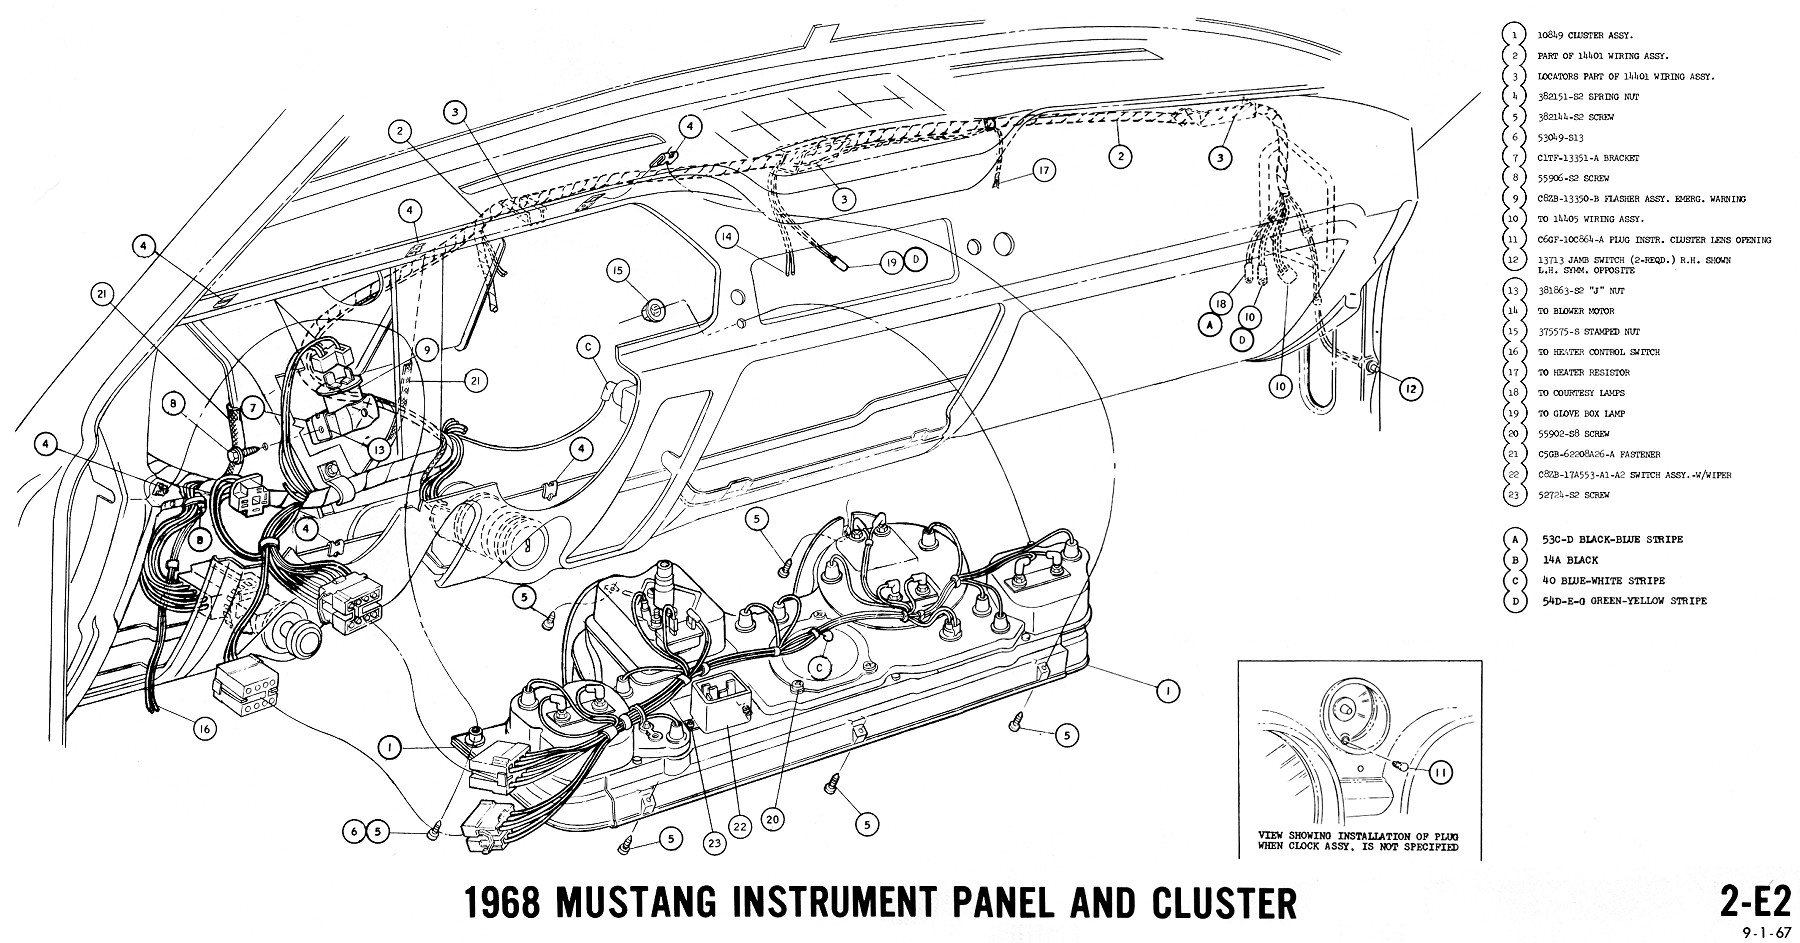 [WRG-7265] Light Switch Wiring Diagram 1968 Mustang